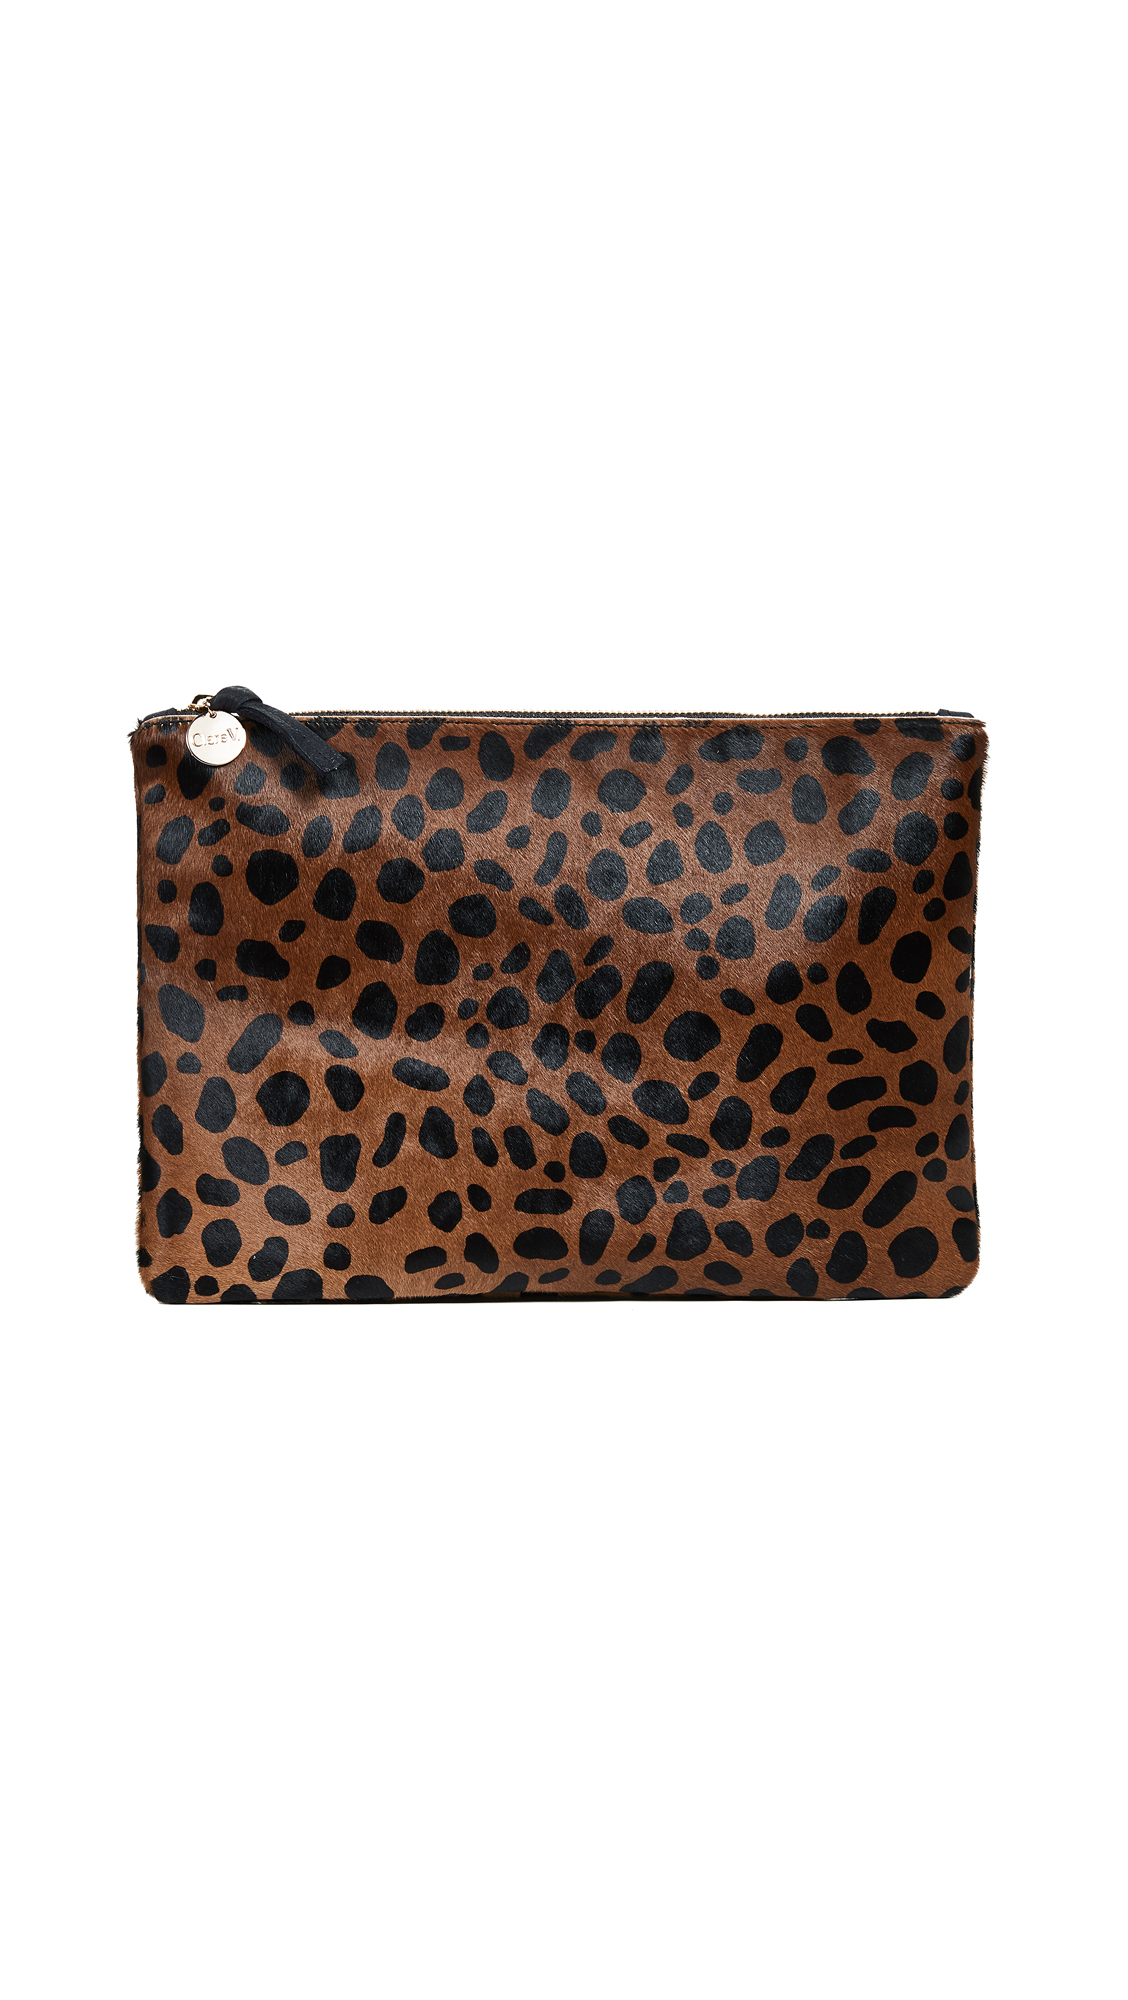 Clare V. Leopard Flat Haircalf Clutch